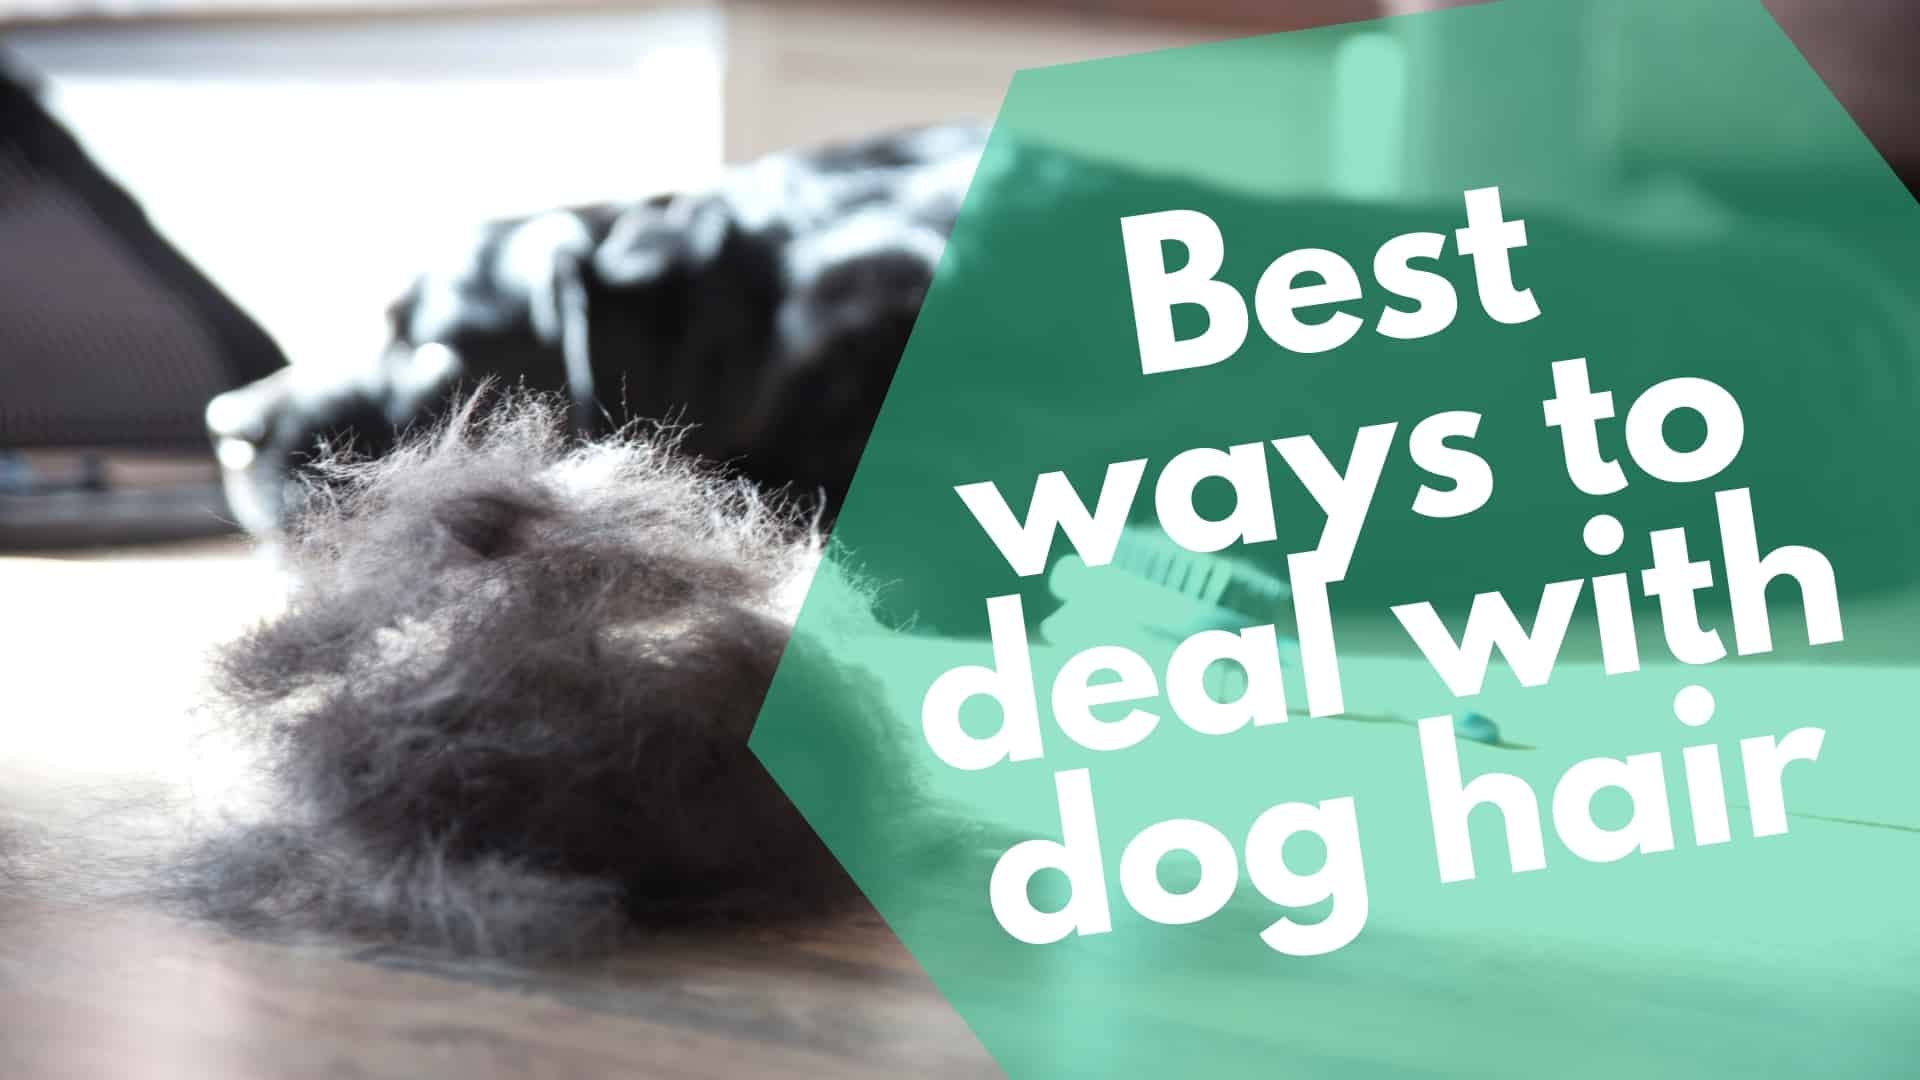 Best ways to deal with dog hair